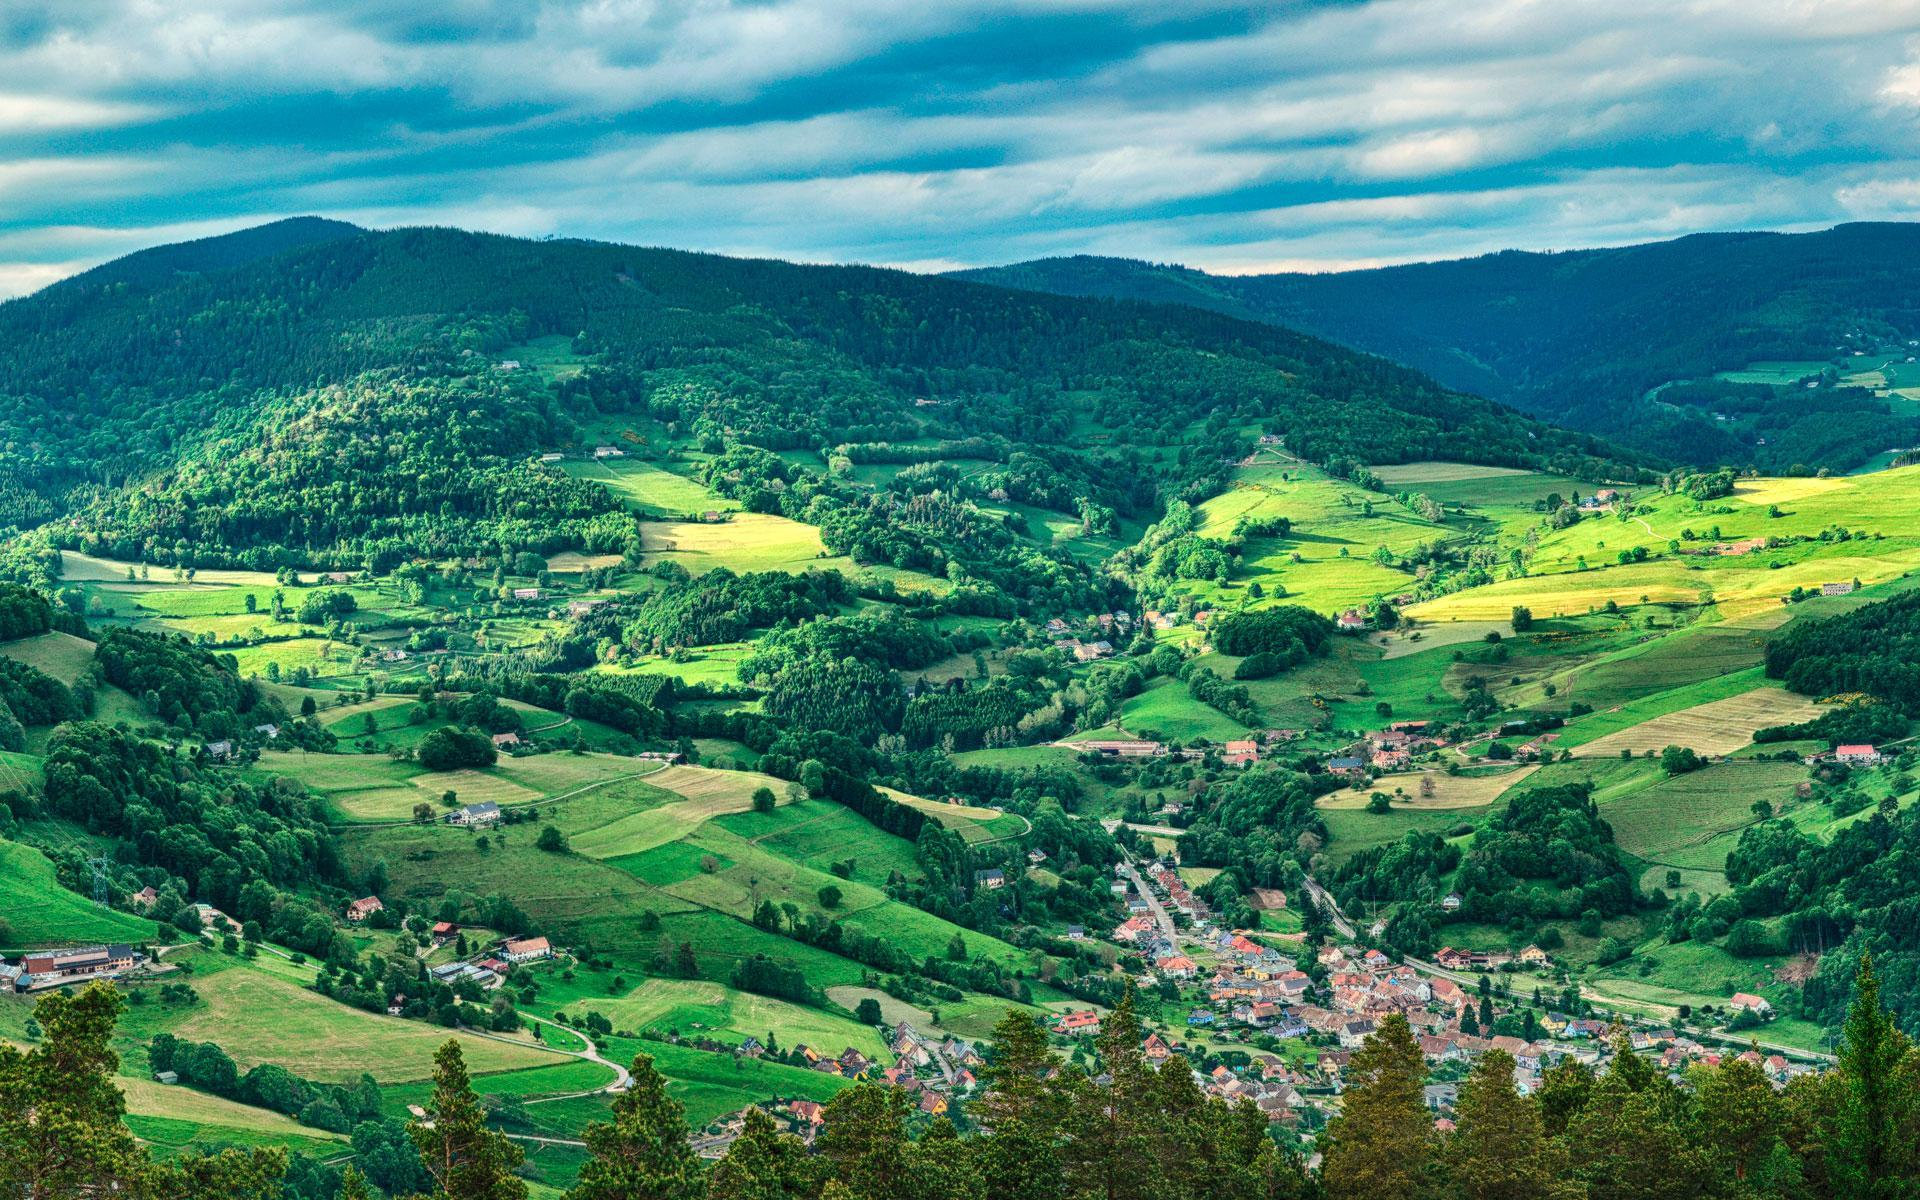 Panoramic photography of the green Munster Valley, in the heart of the Vosges